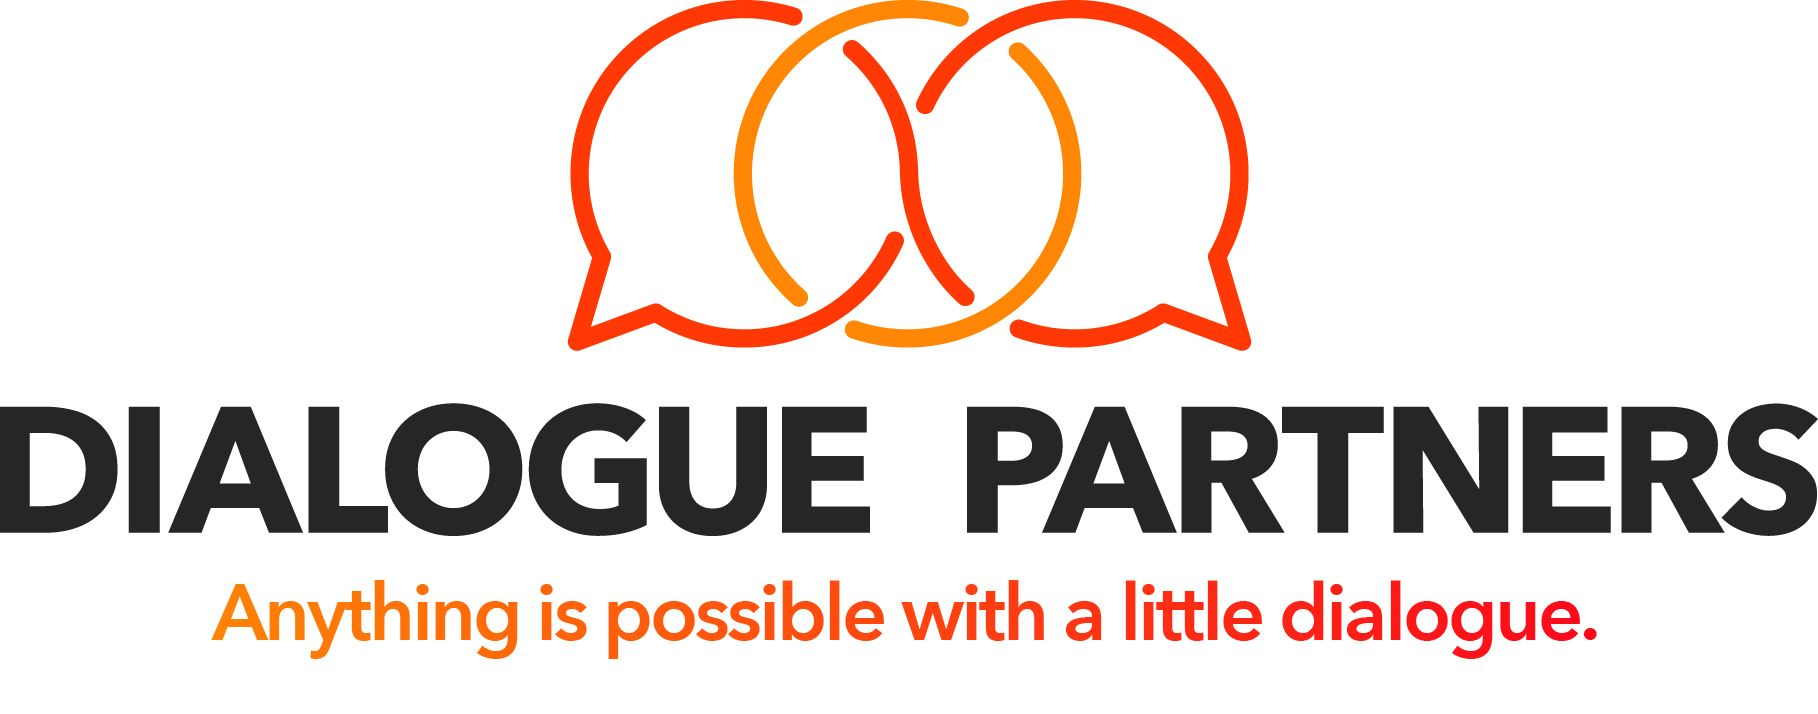 Dialogue Partners, Inc.